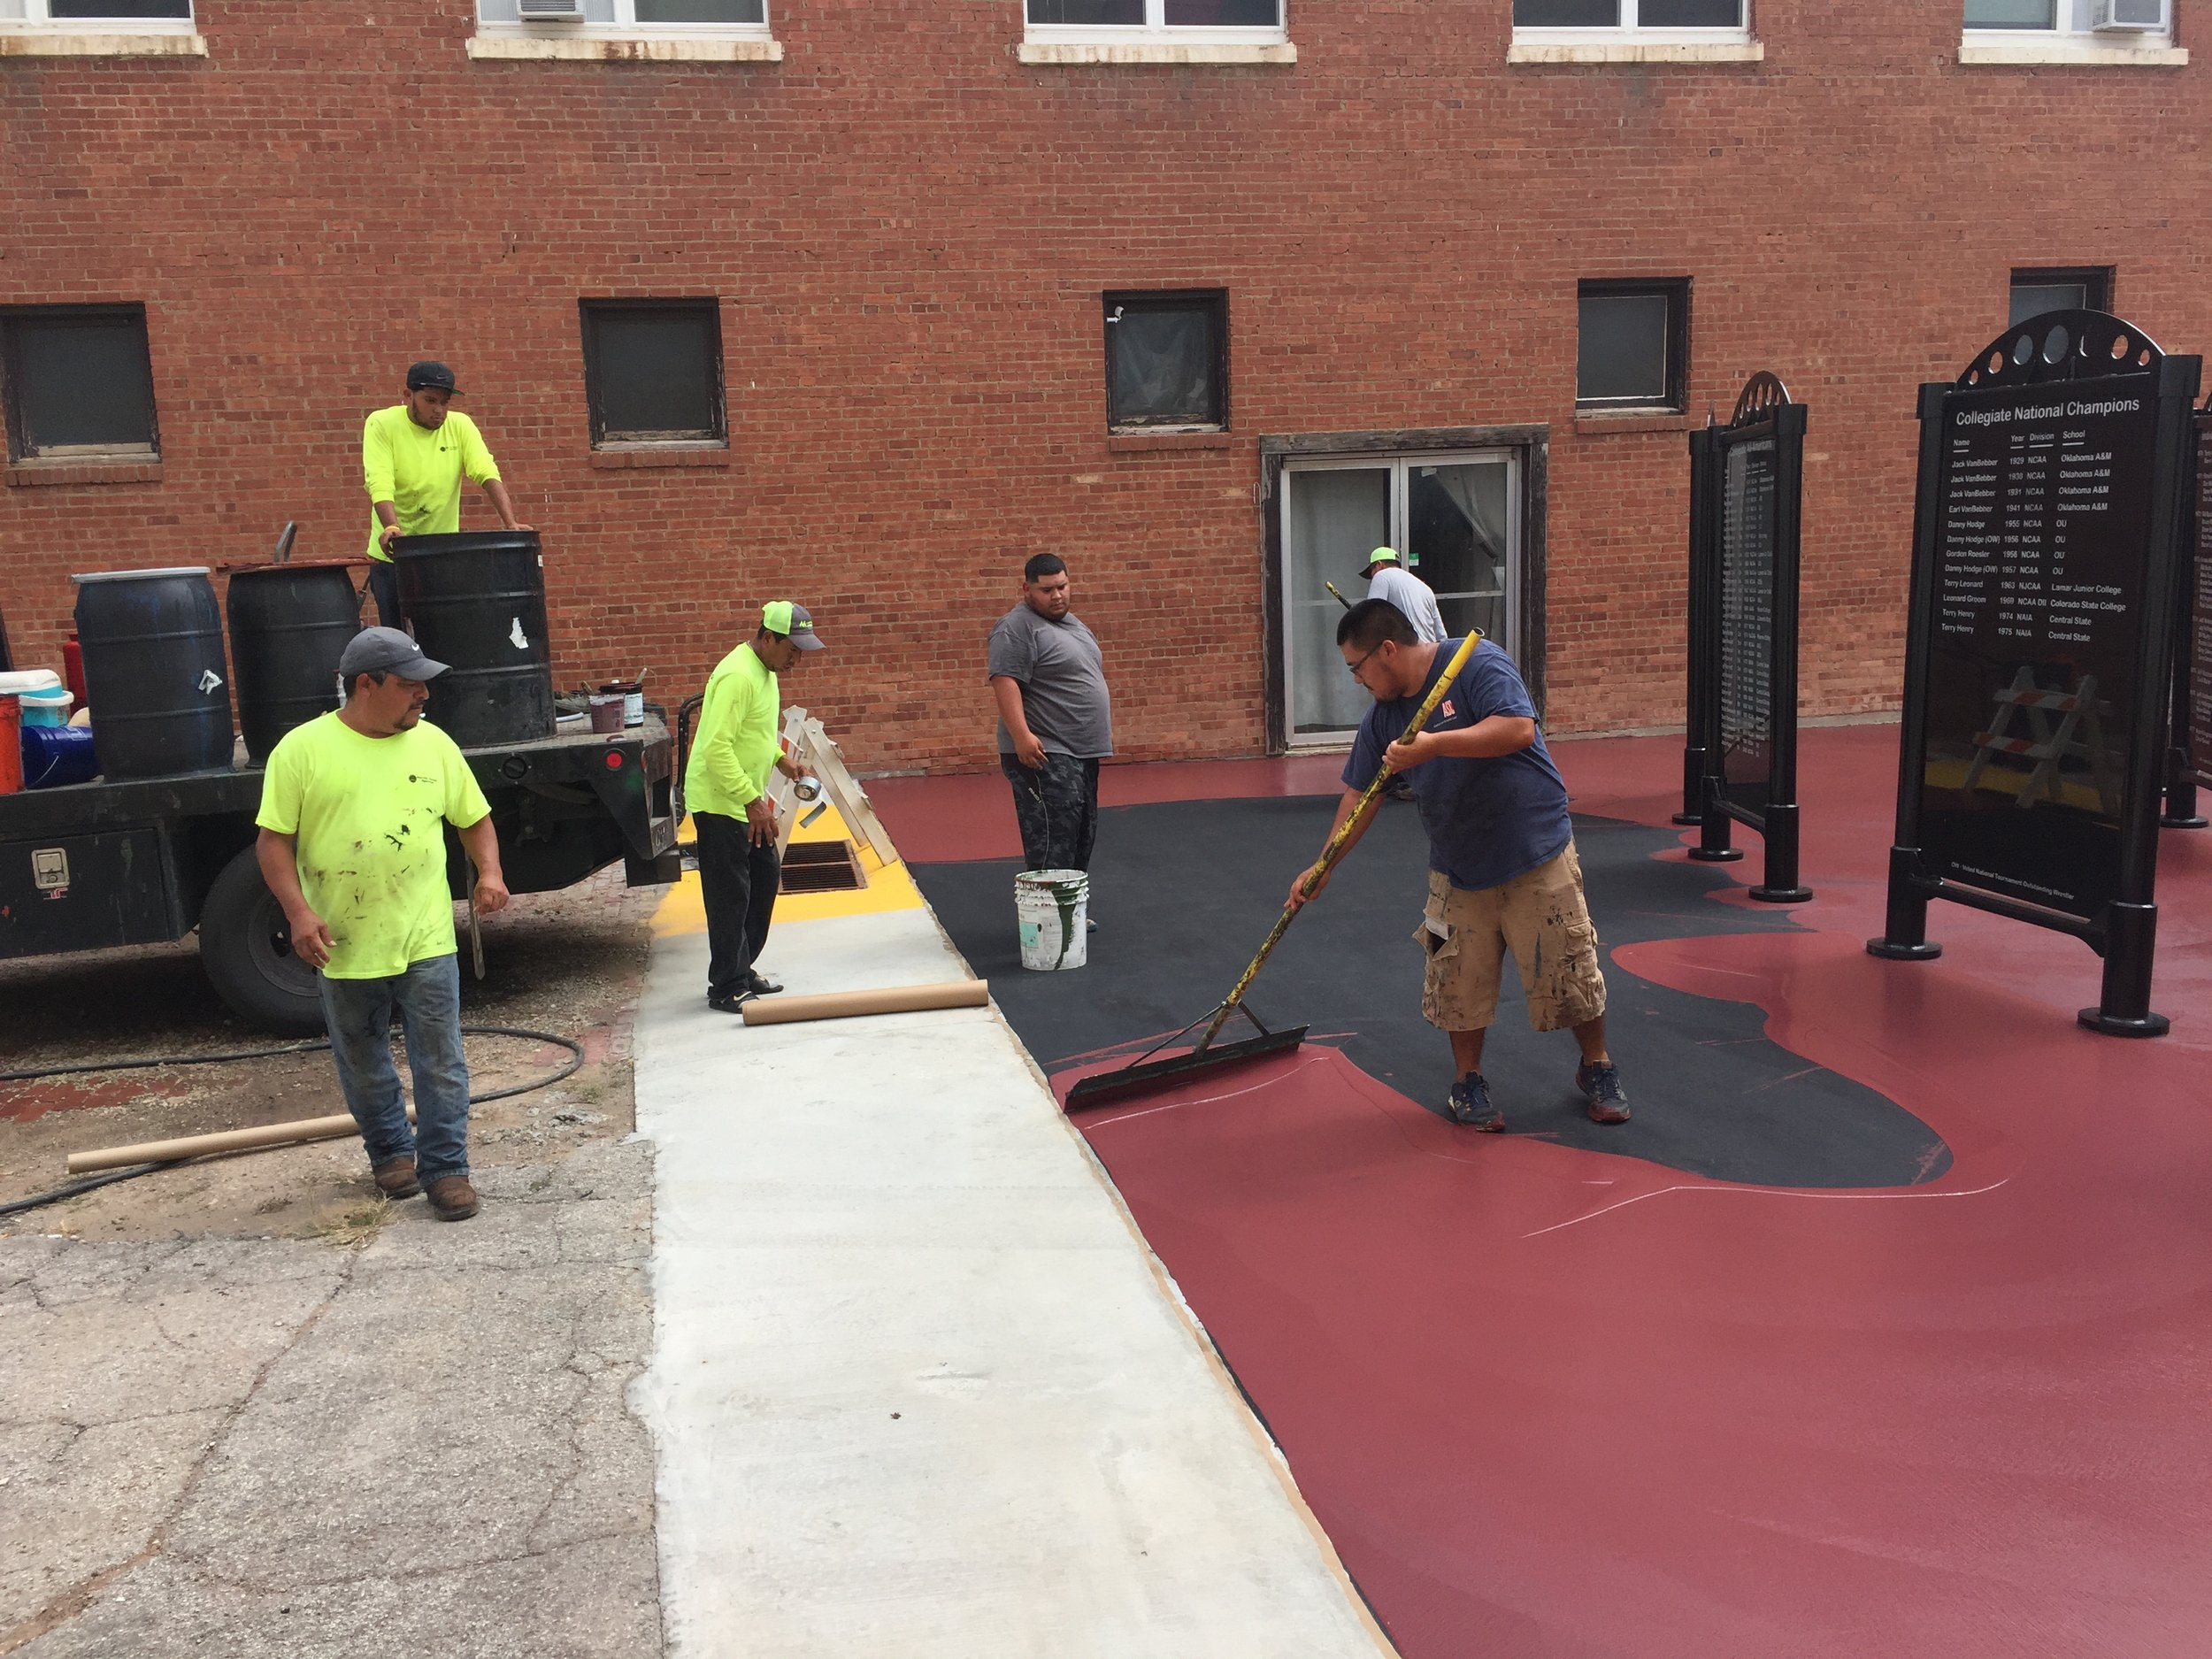 Applying maroon paint on the concrete.   (This is the same type of paint used on tennis courts)